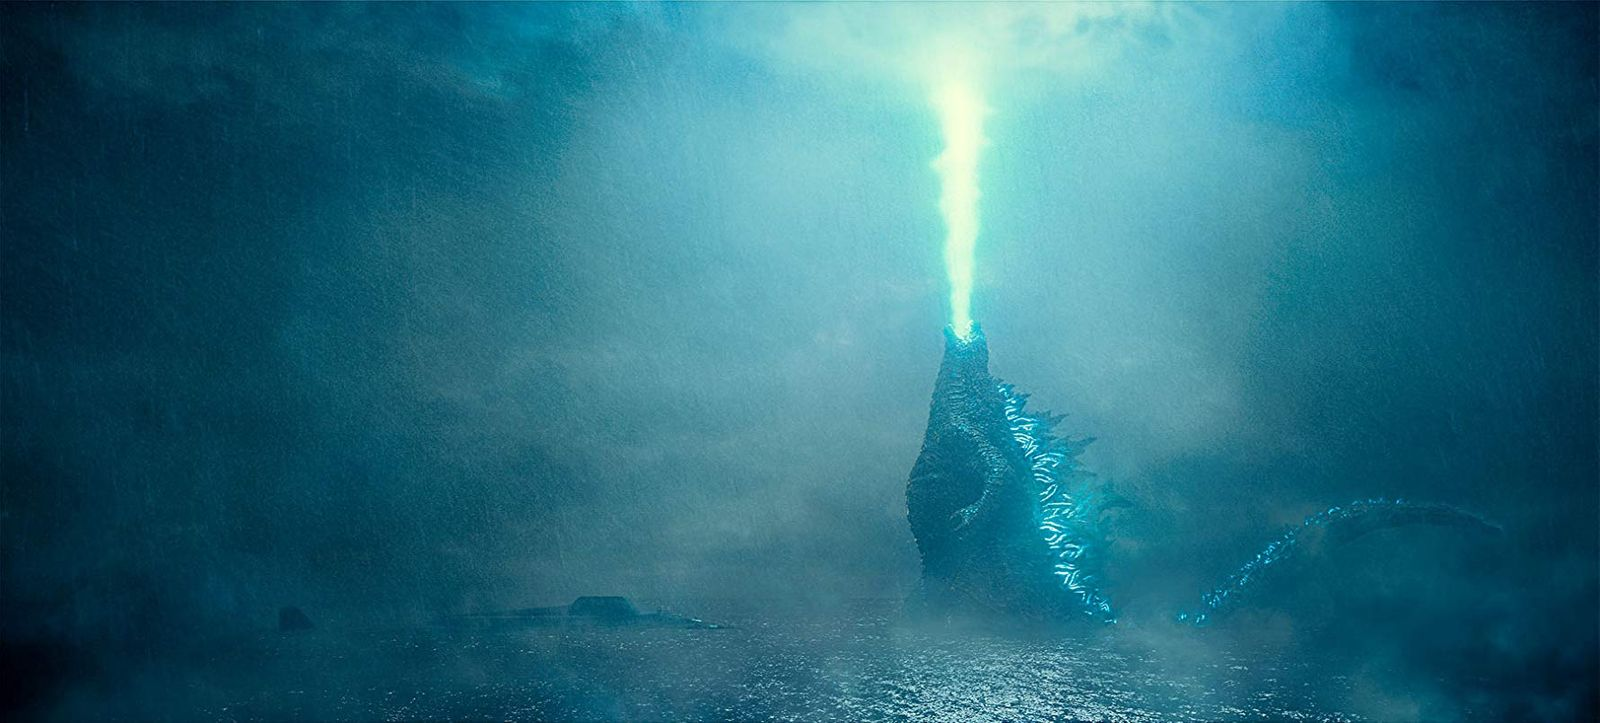 [รีวิวหนัง] GODZILLA : King of the monsters (2019) LONG LIVE THE KING !!!